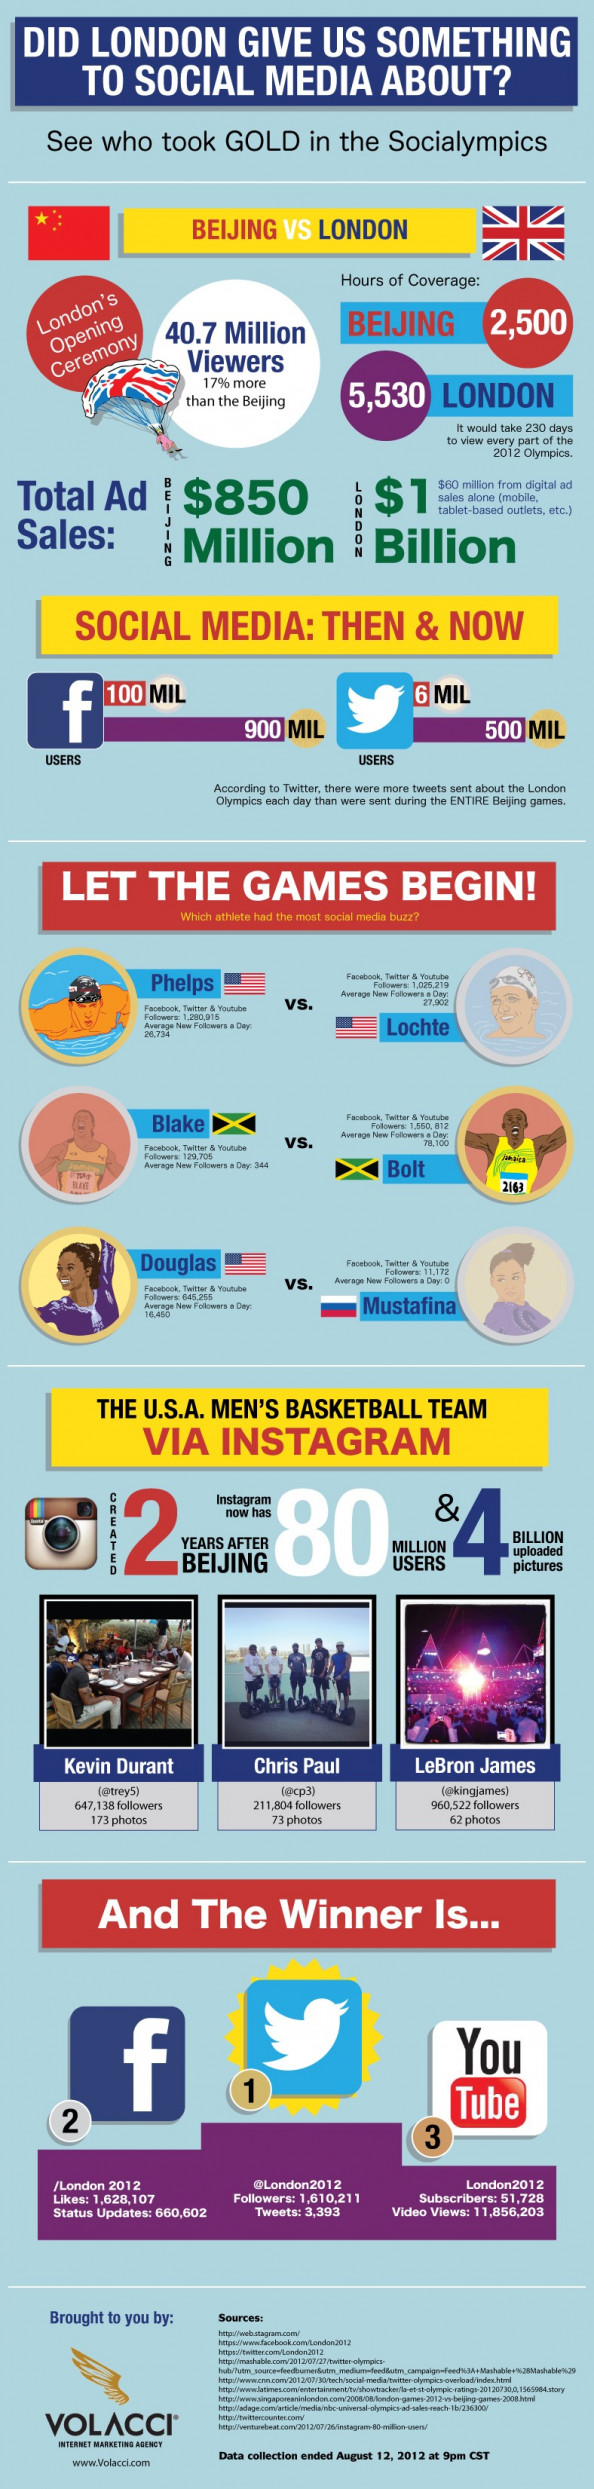 See who took gold in the 2012 Socialympics Infographic